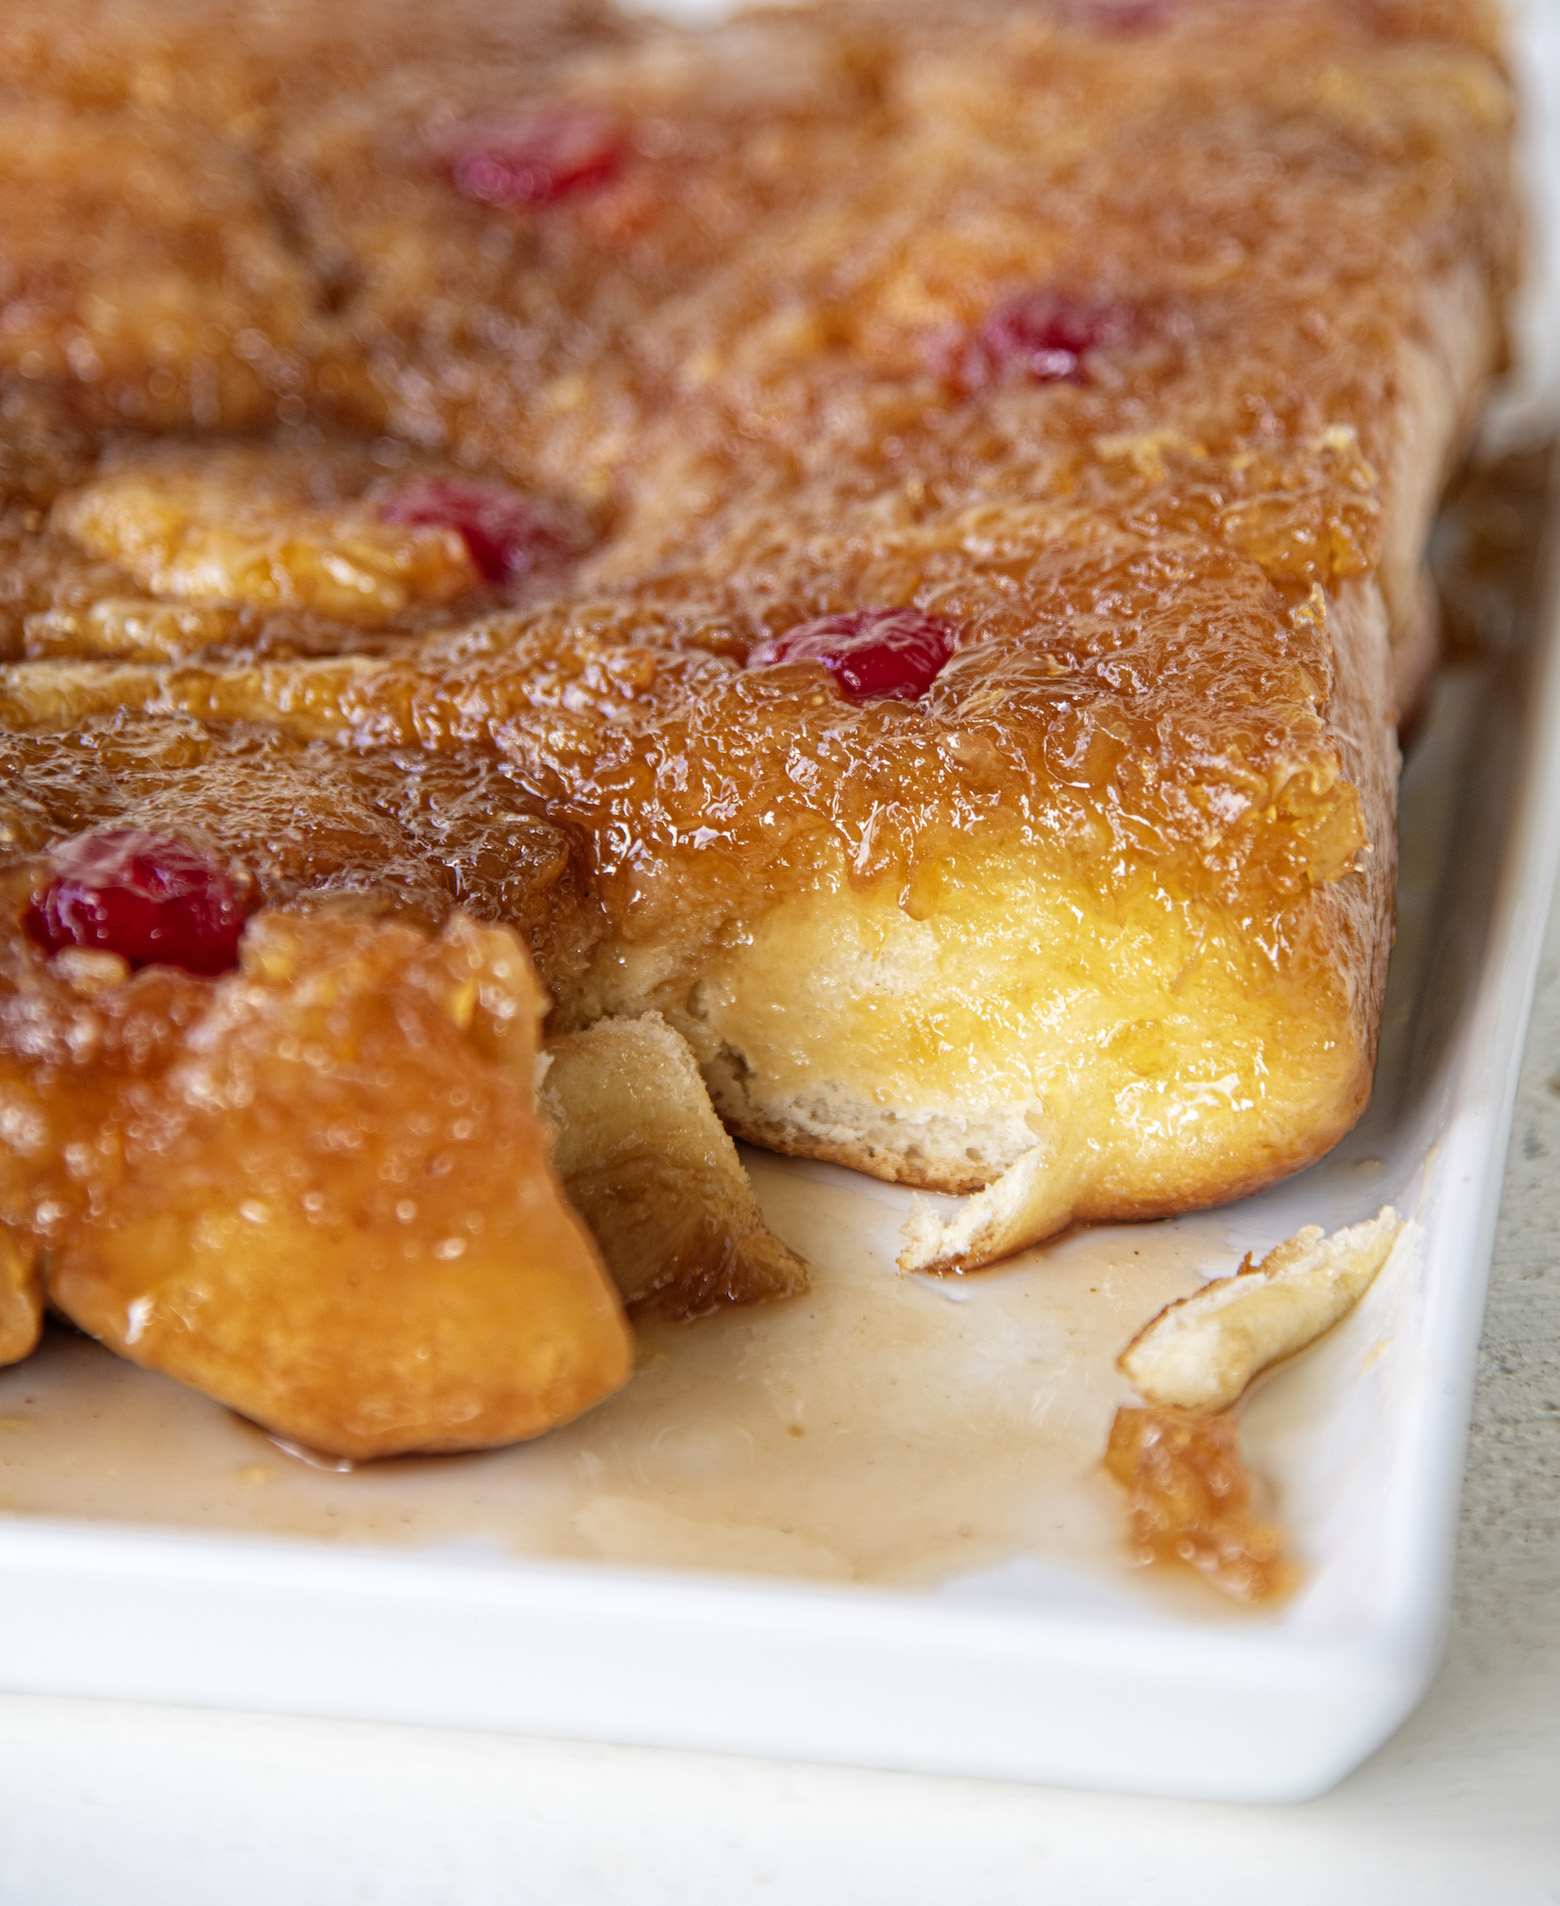 Pineapple Upside Down Sticky Buns